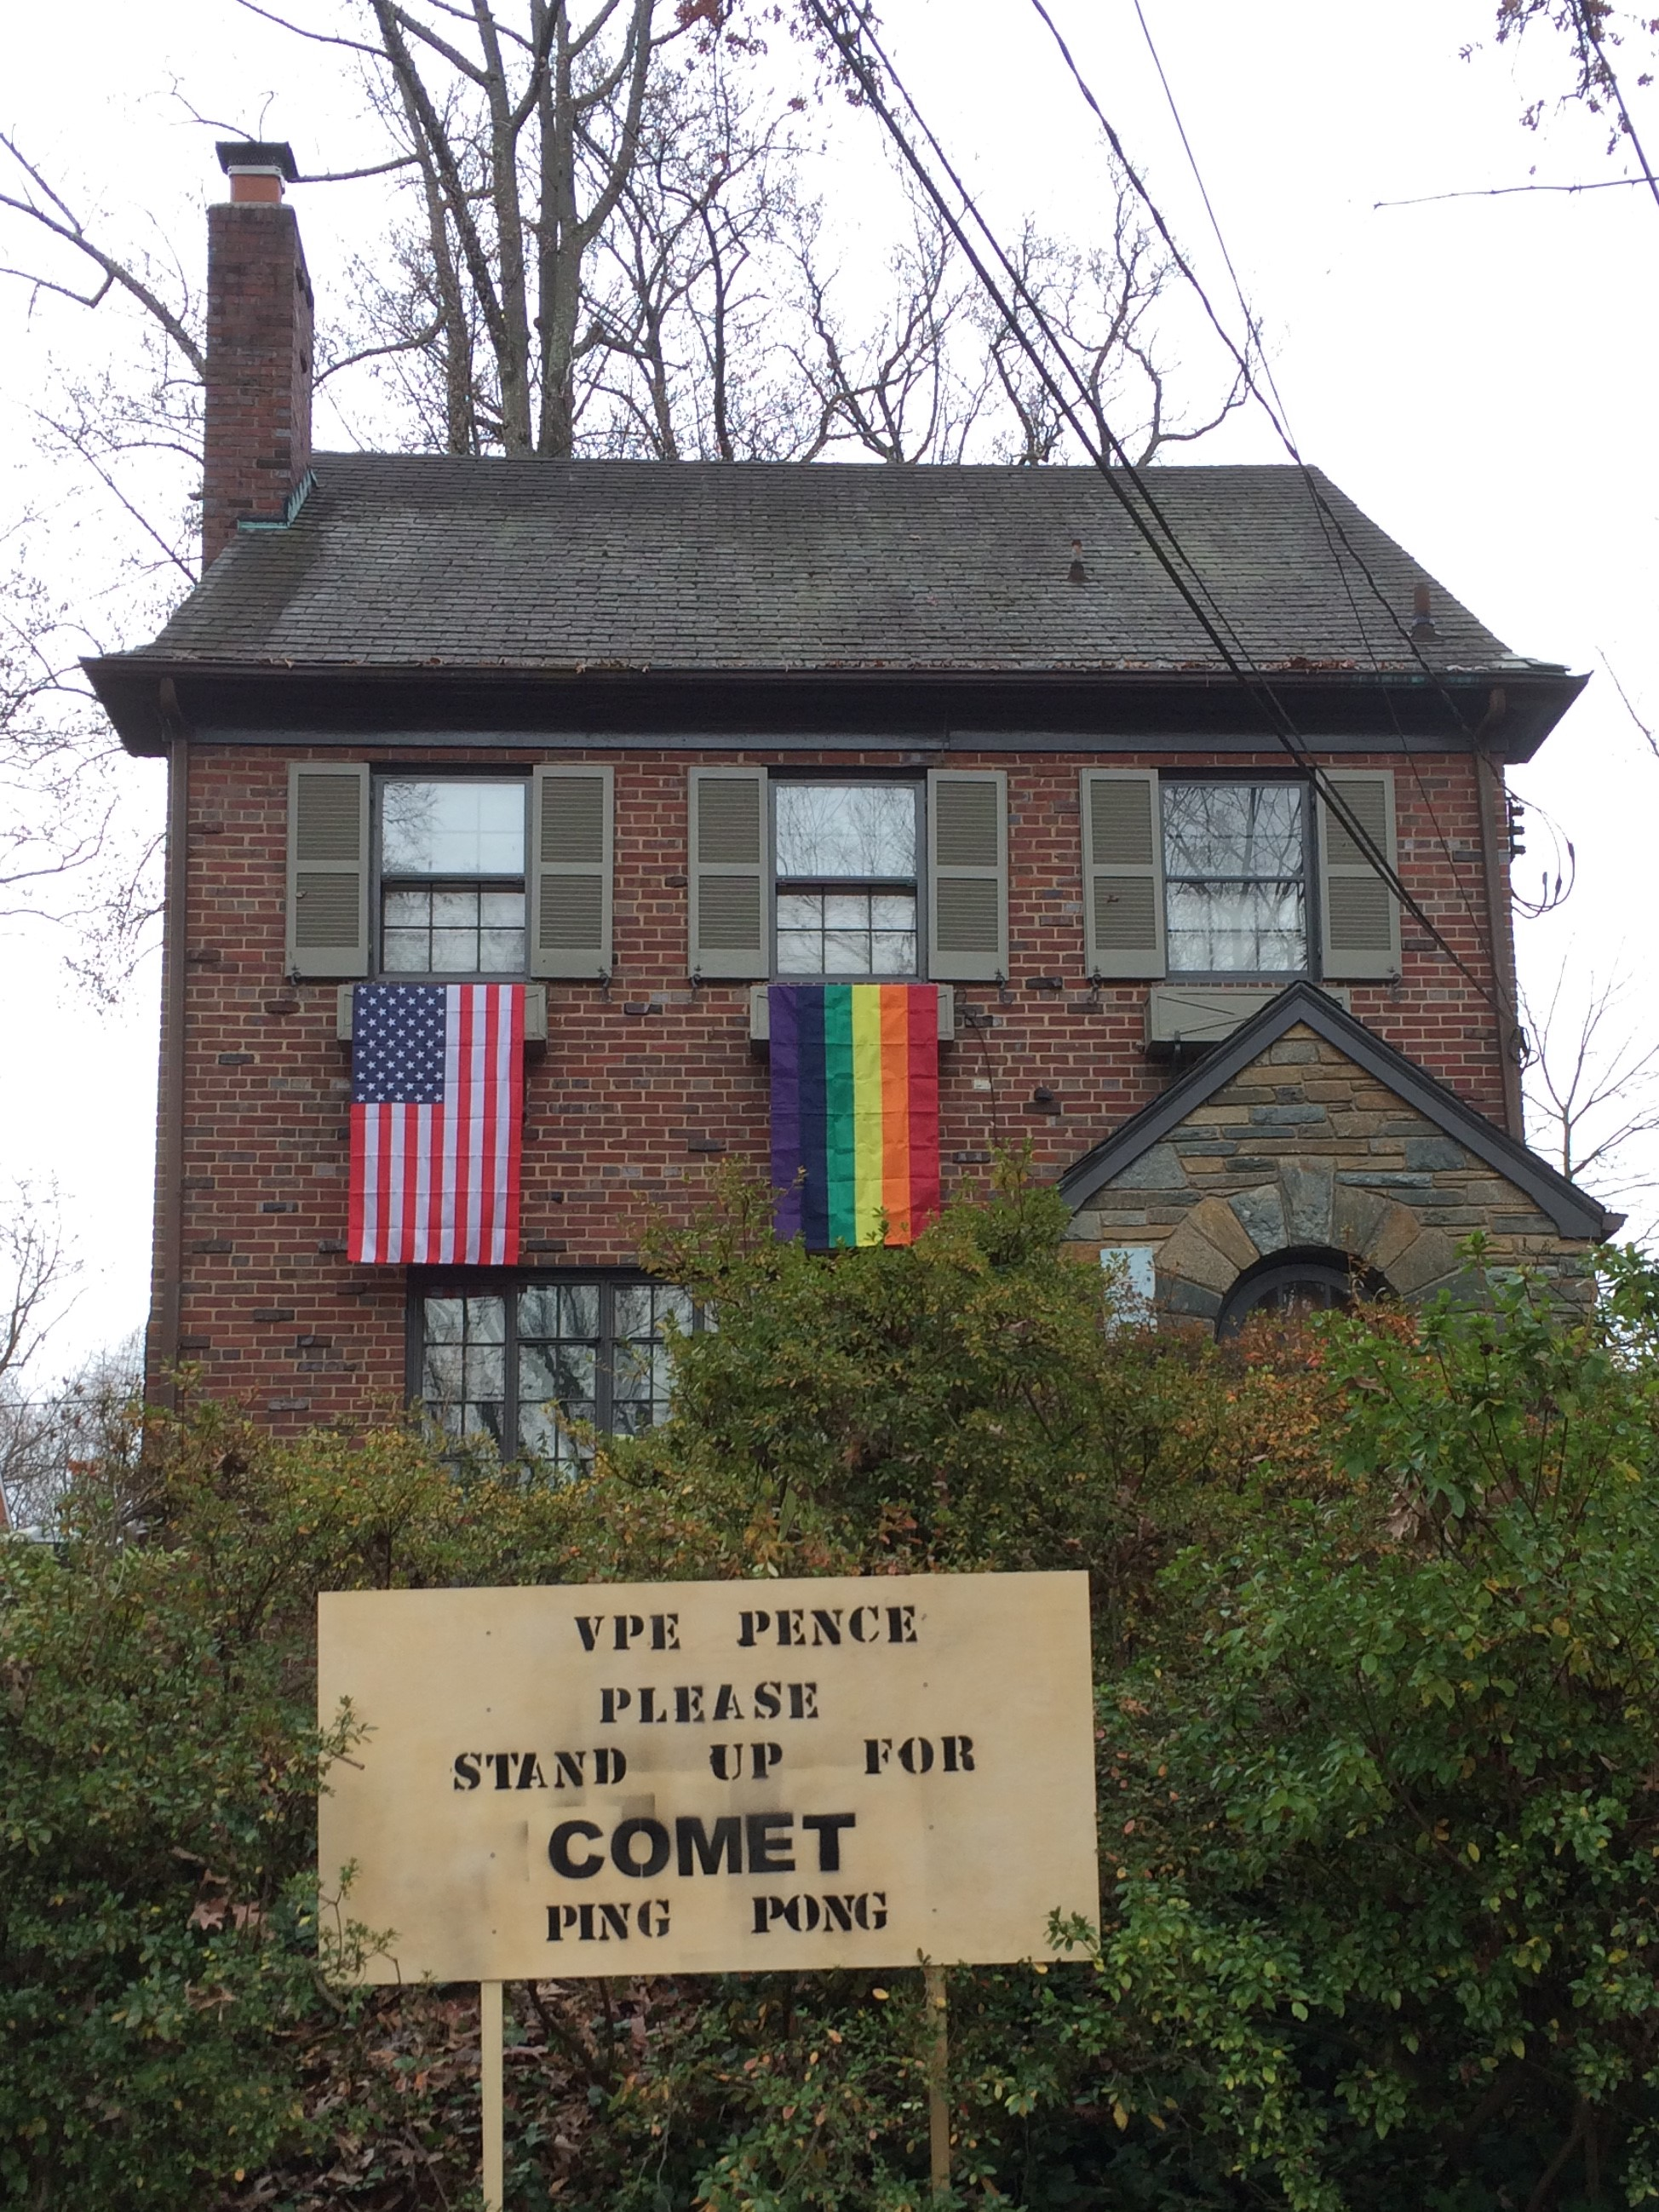 Chevy Chase DC neighbors flew more than 300 rainbow flags as a peaceful protest to Vice President-elect Mike Pence's LGBT policies….and asked him to show his support for Comet Ping Pong.